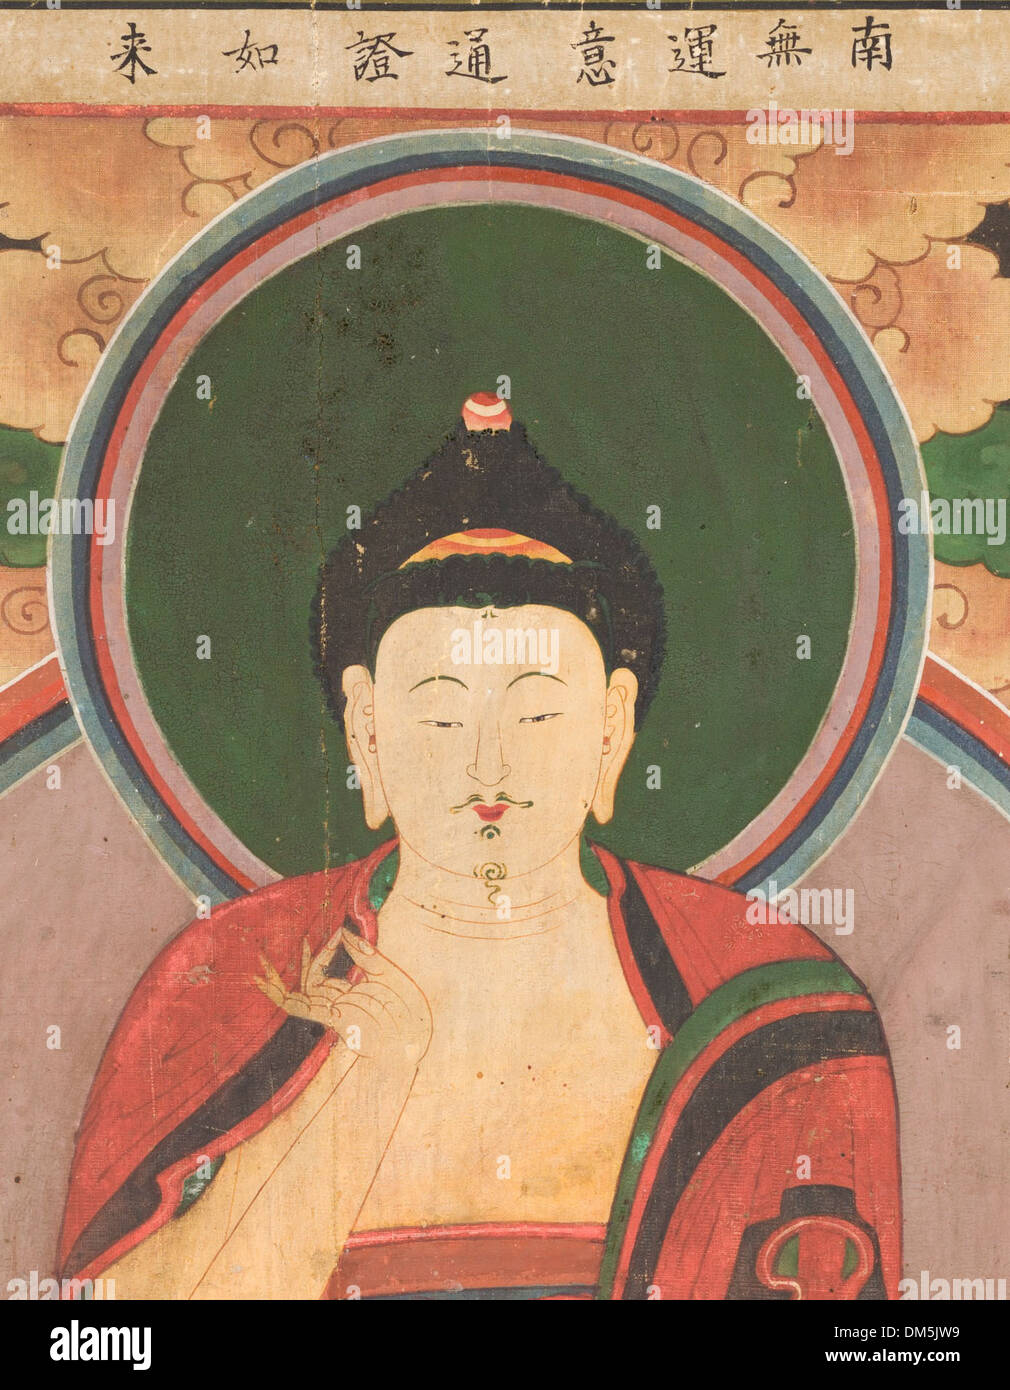 First and Second of the Buddhas of the Seven Stars of the Big Dipper  (Chilseong Yeorae)- Uneui Tongjeung Yeorae with Tamlang Seongun  2000.15.1-.2 (3 of 7)